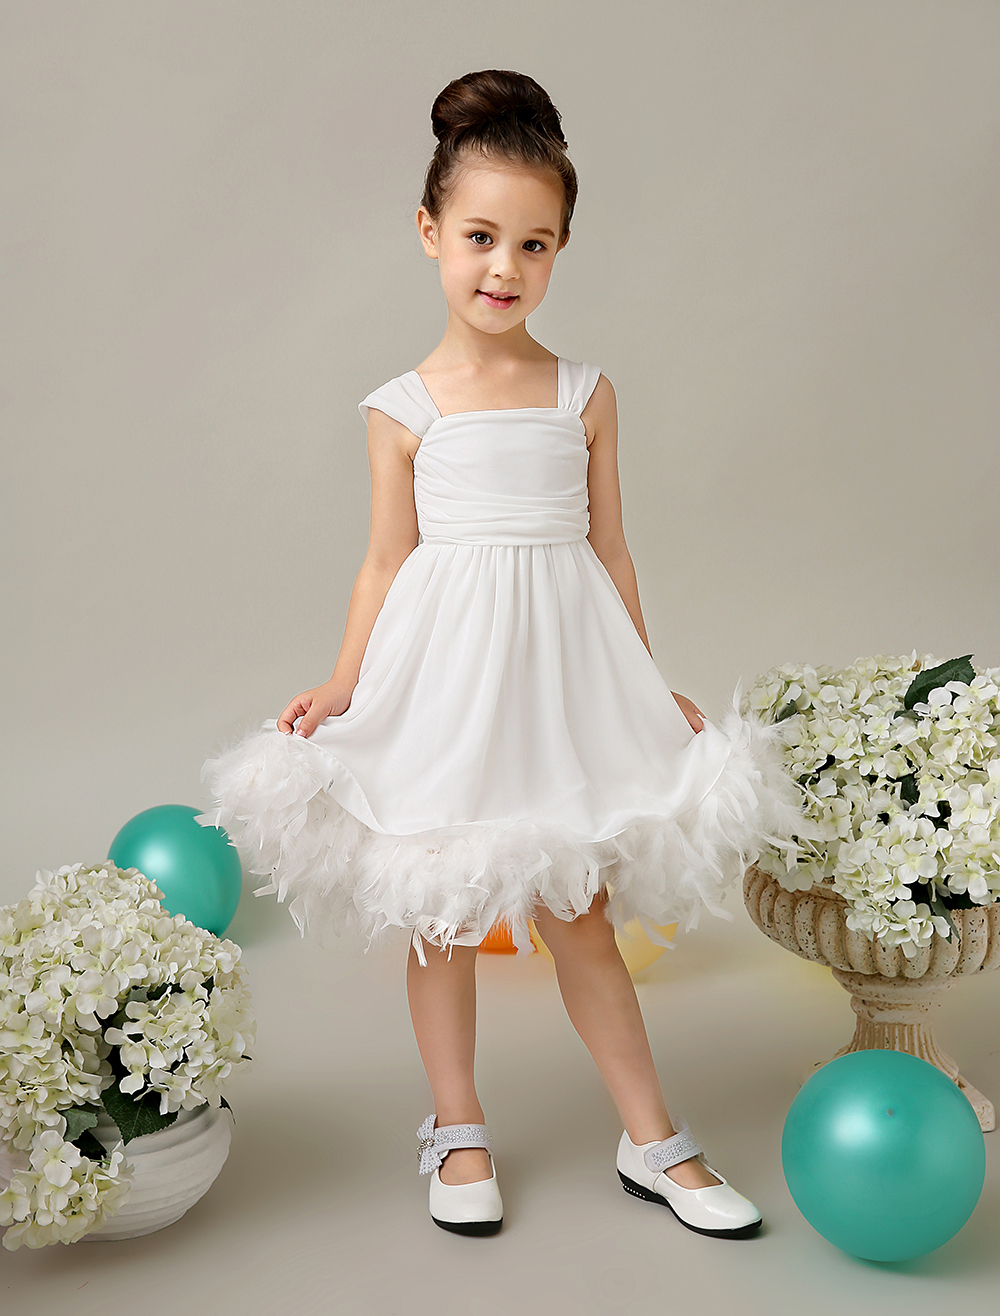 Little girl flower girls dresses junoir bridesmaid dresses for Little flower girl wedding dresses